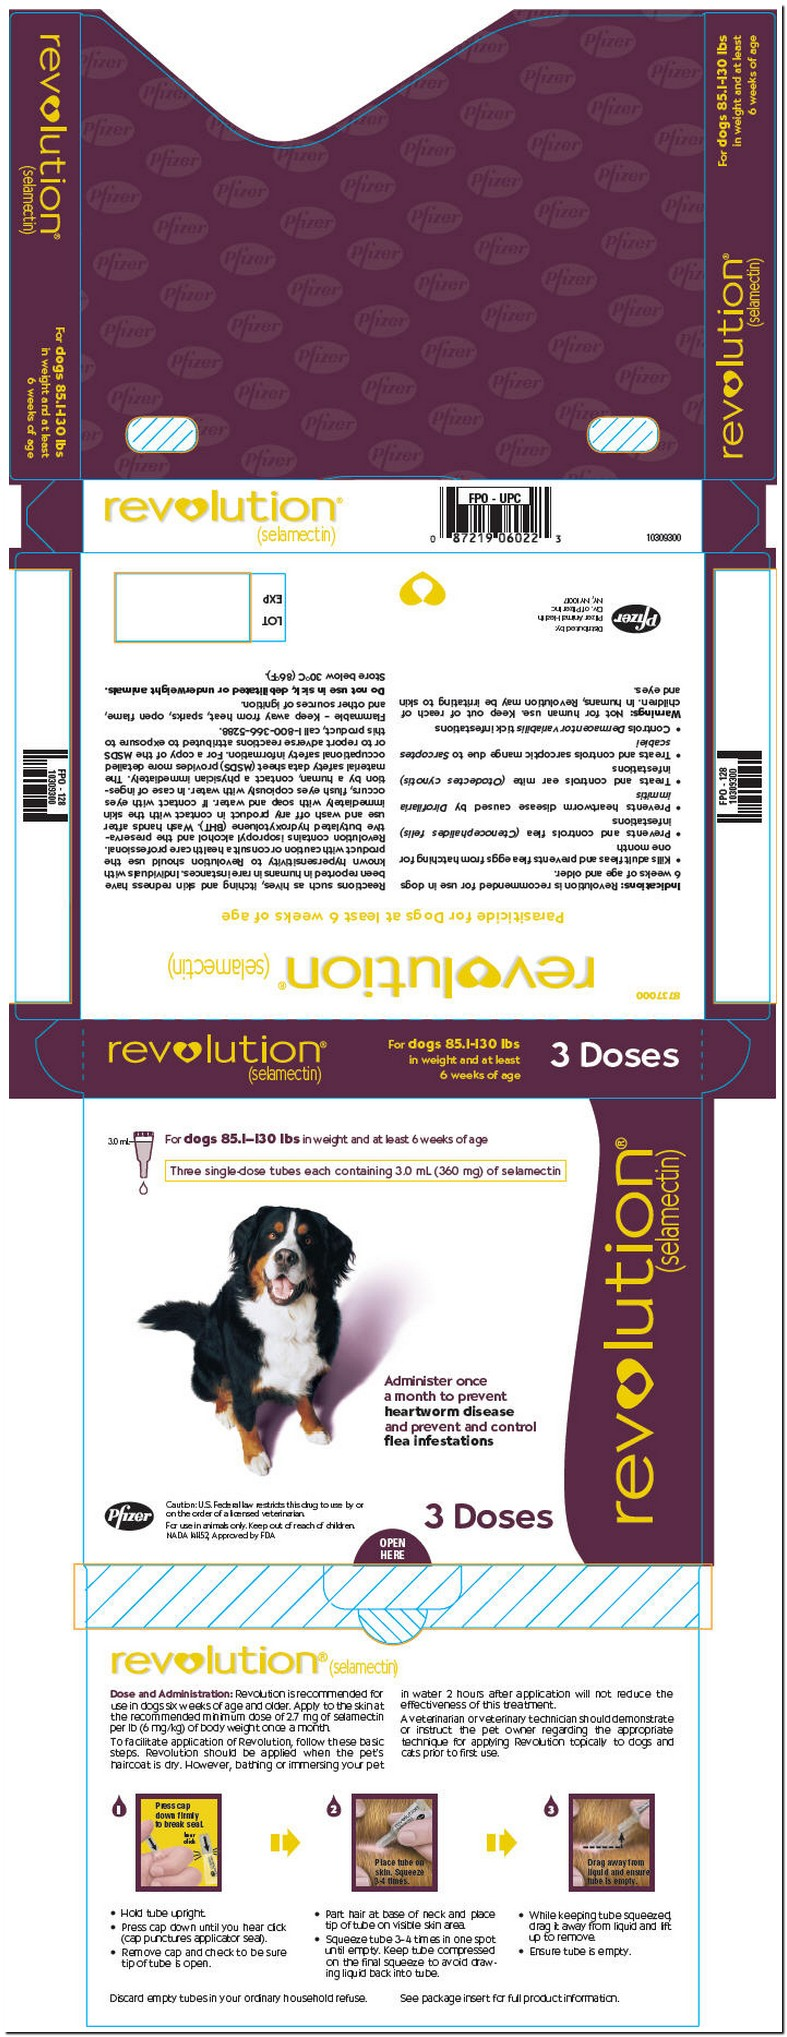 Ivermectin Dosage For Fleas